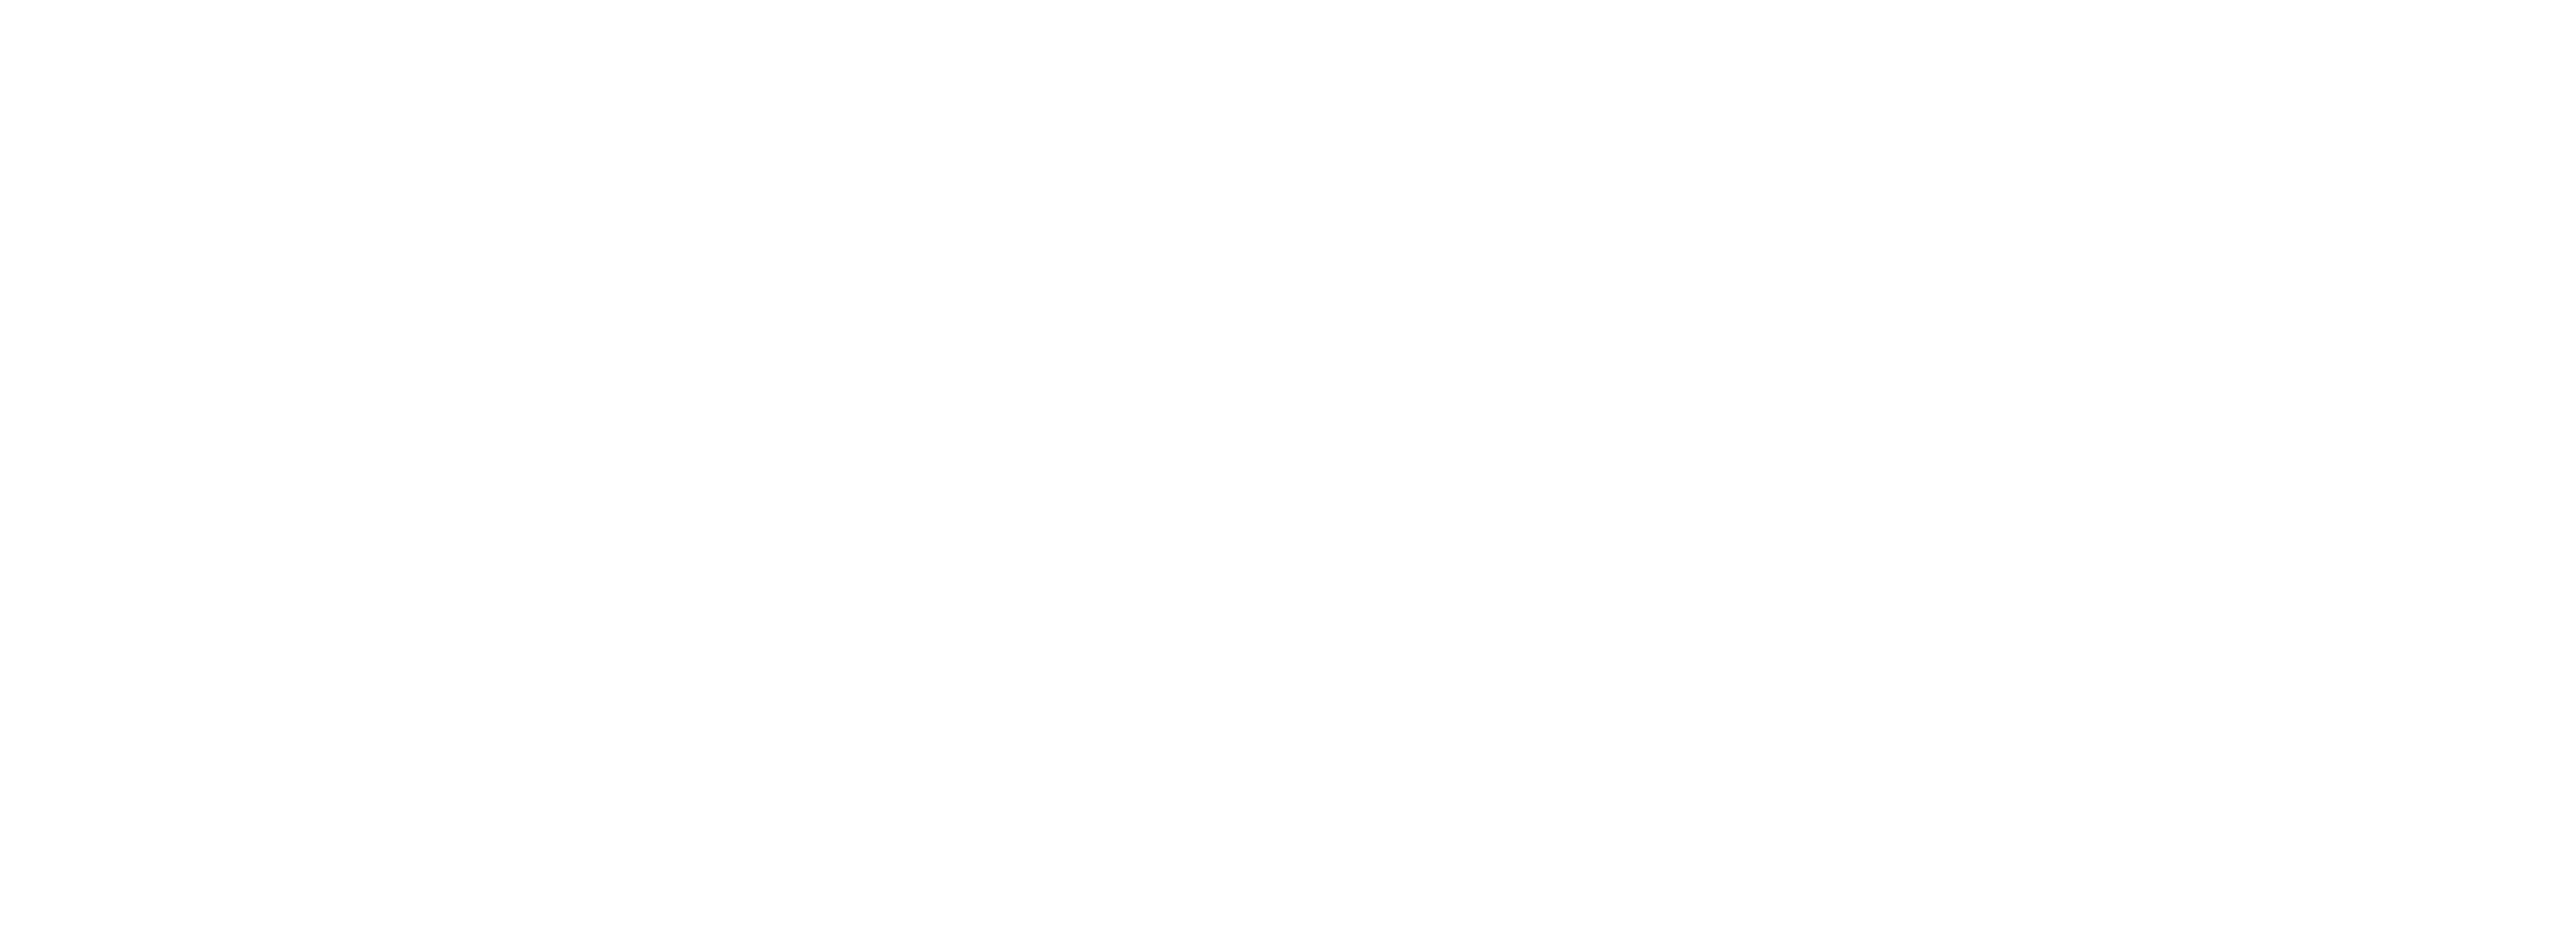 Goodenough College